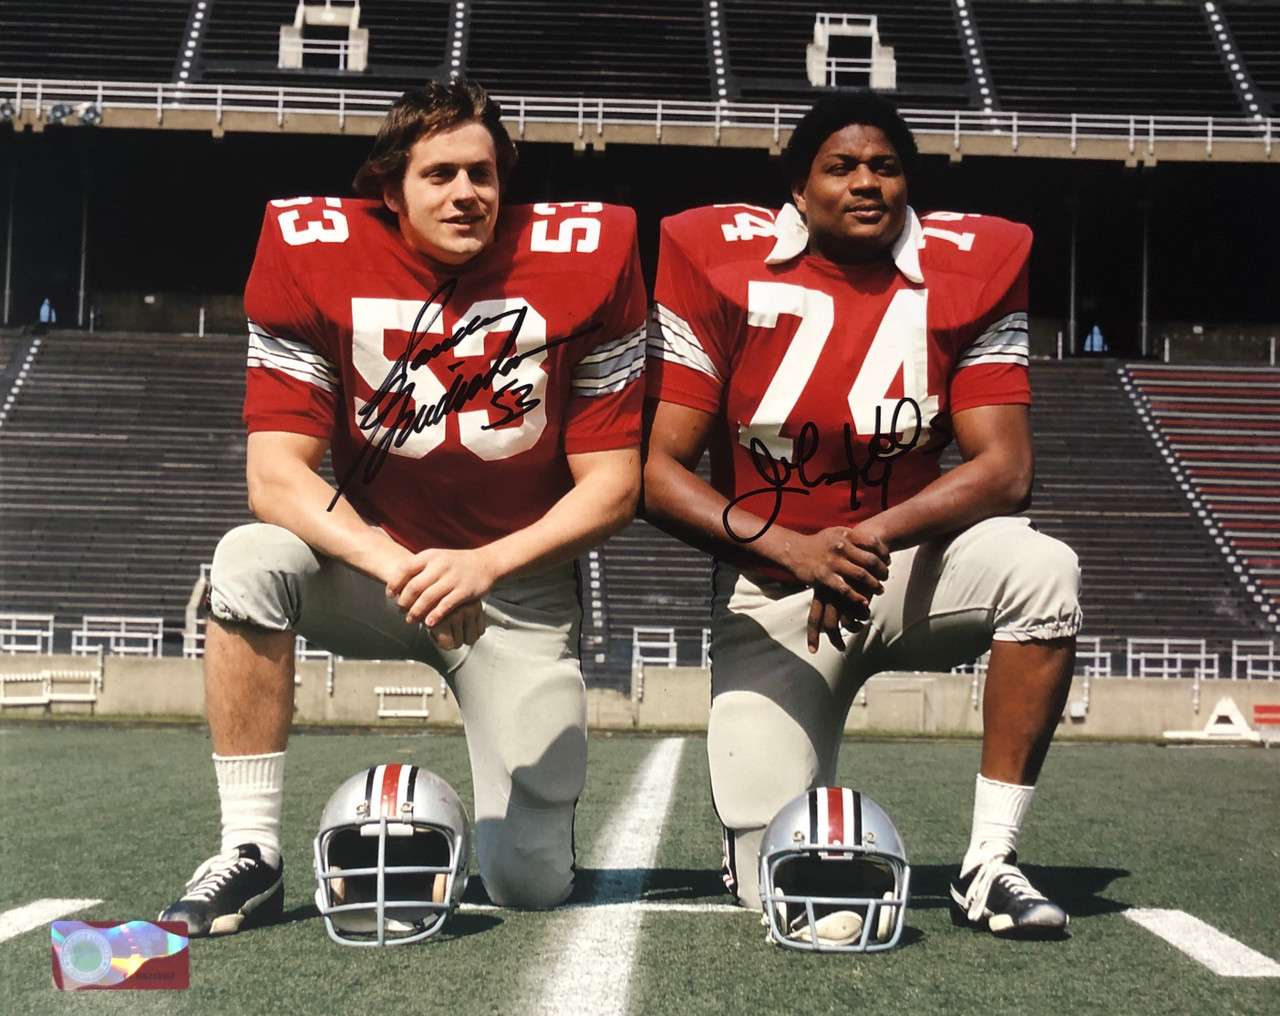 Randy Gradishar & John Hicks OSU 11-1 11x14 Autographed Photo - Certified Authentic